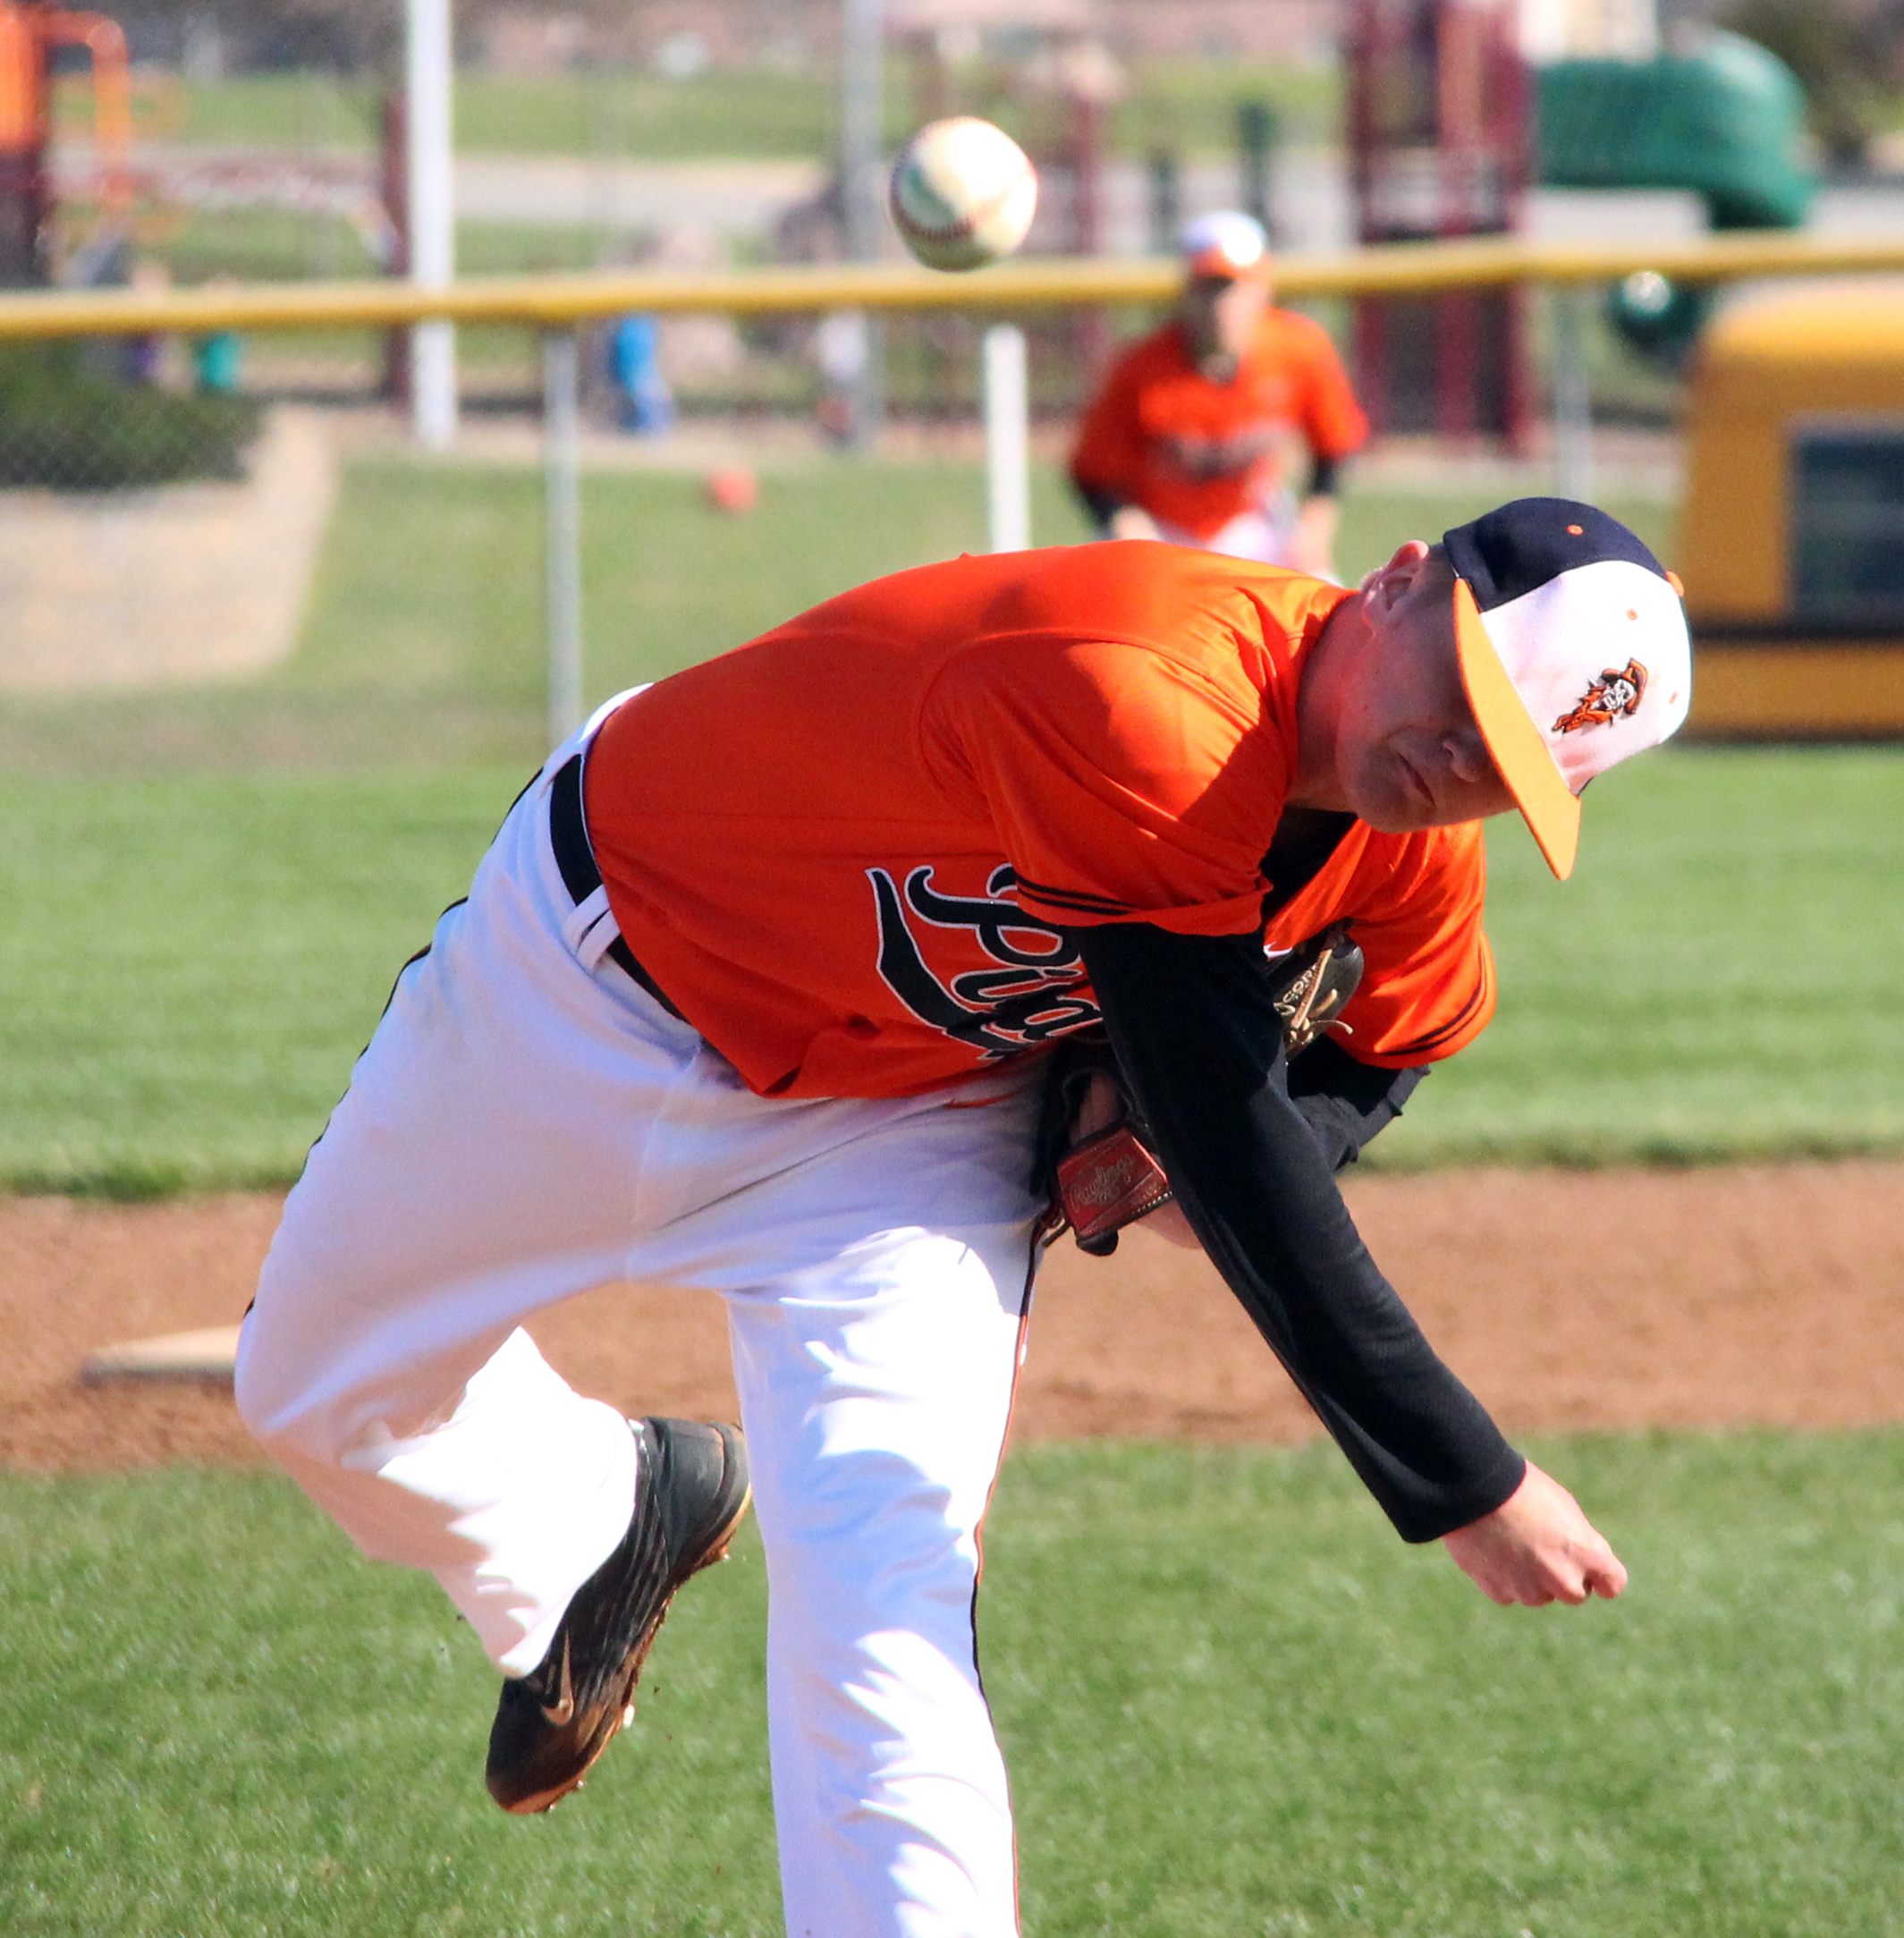 ROSS MARTIN/Citizen photo Platte County junior Jared Wilson follows through on a pitch against Oak Grove during a game Monday, March 28 at Platte County High School.